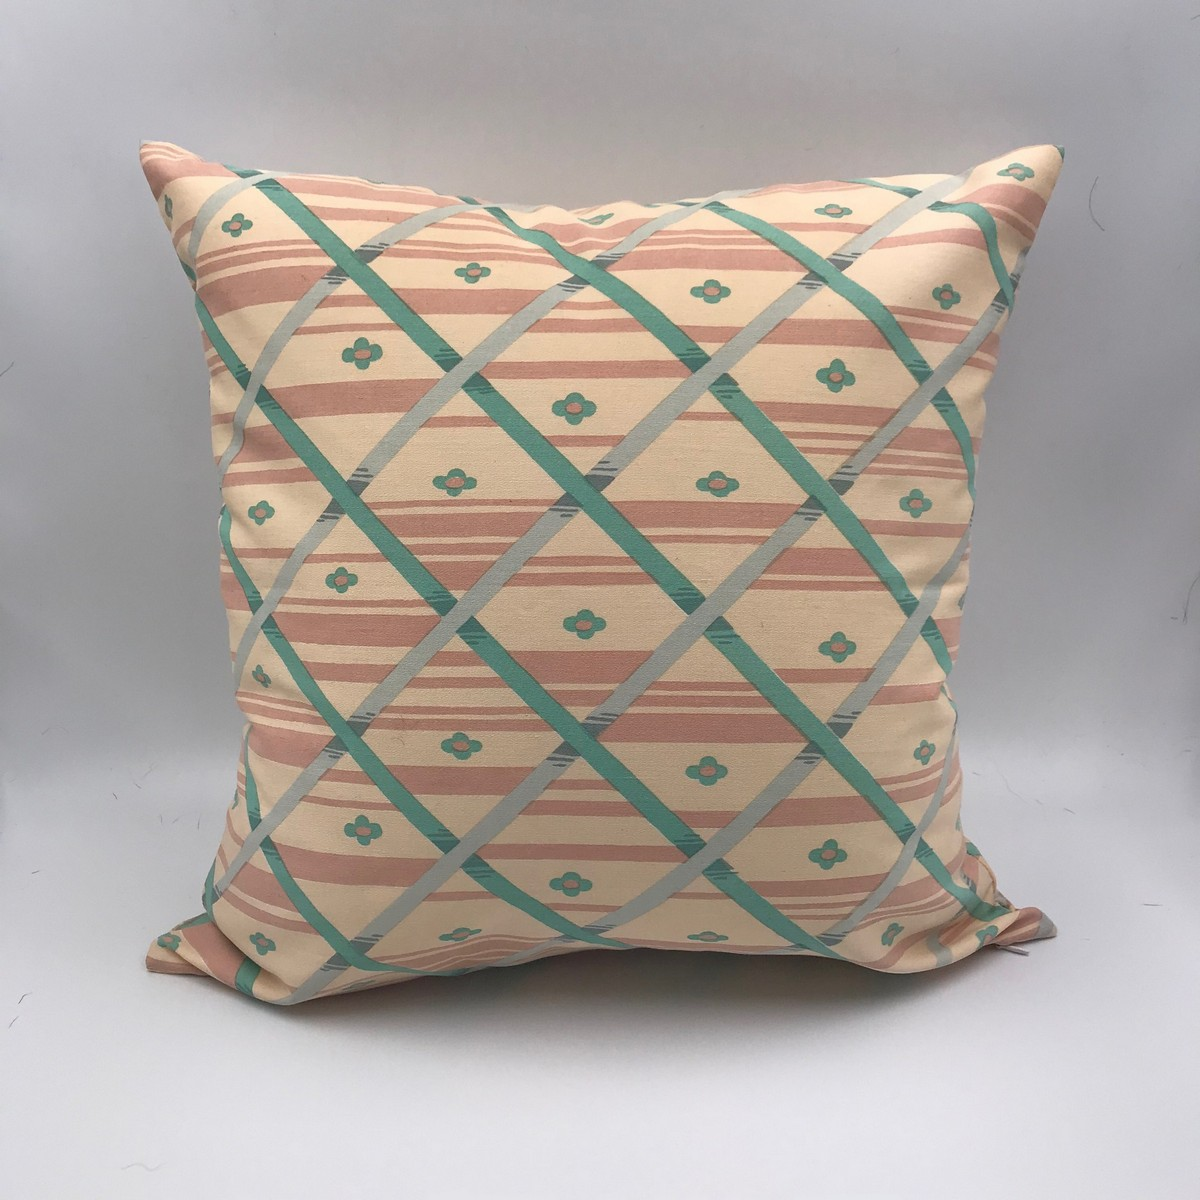 Buy Handmade square pillow vintage style, Сotton craftsman's style 60s pillow, Hand made decorative pillow for home